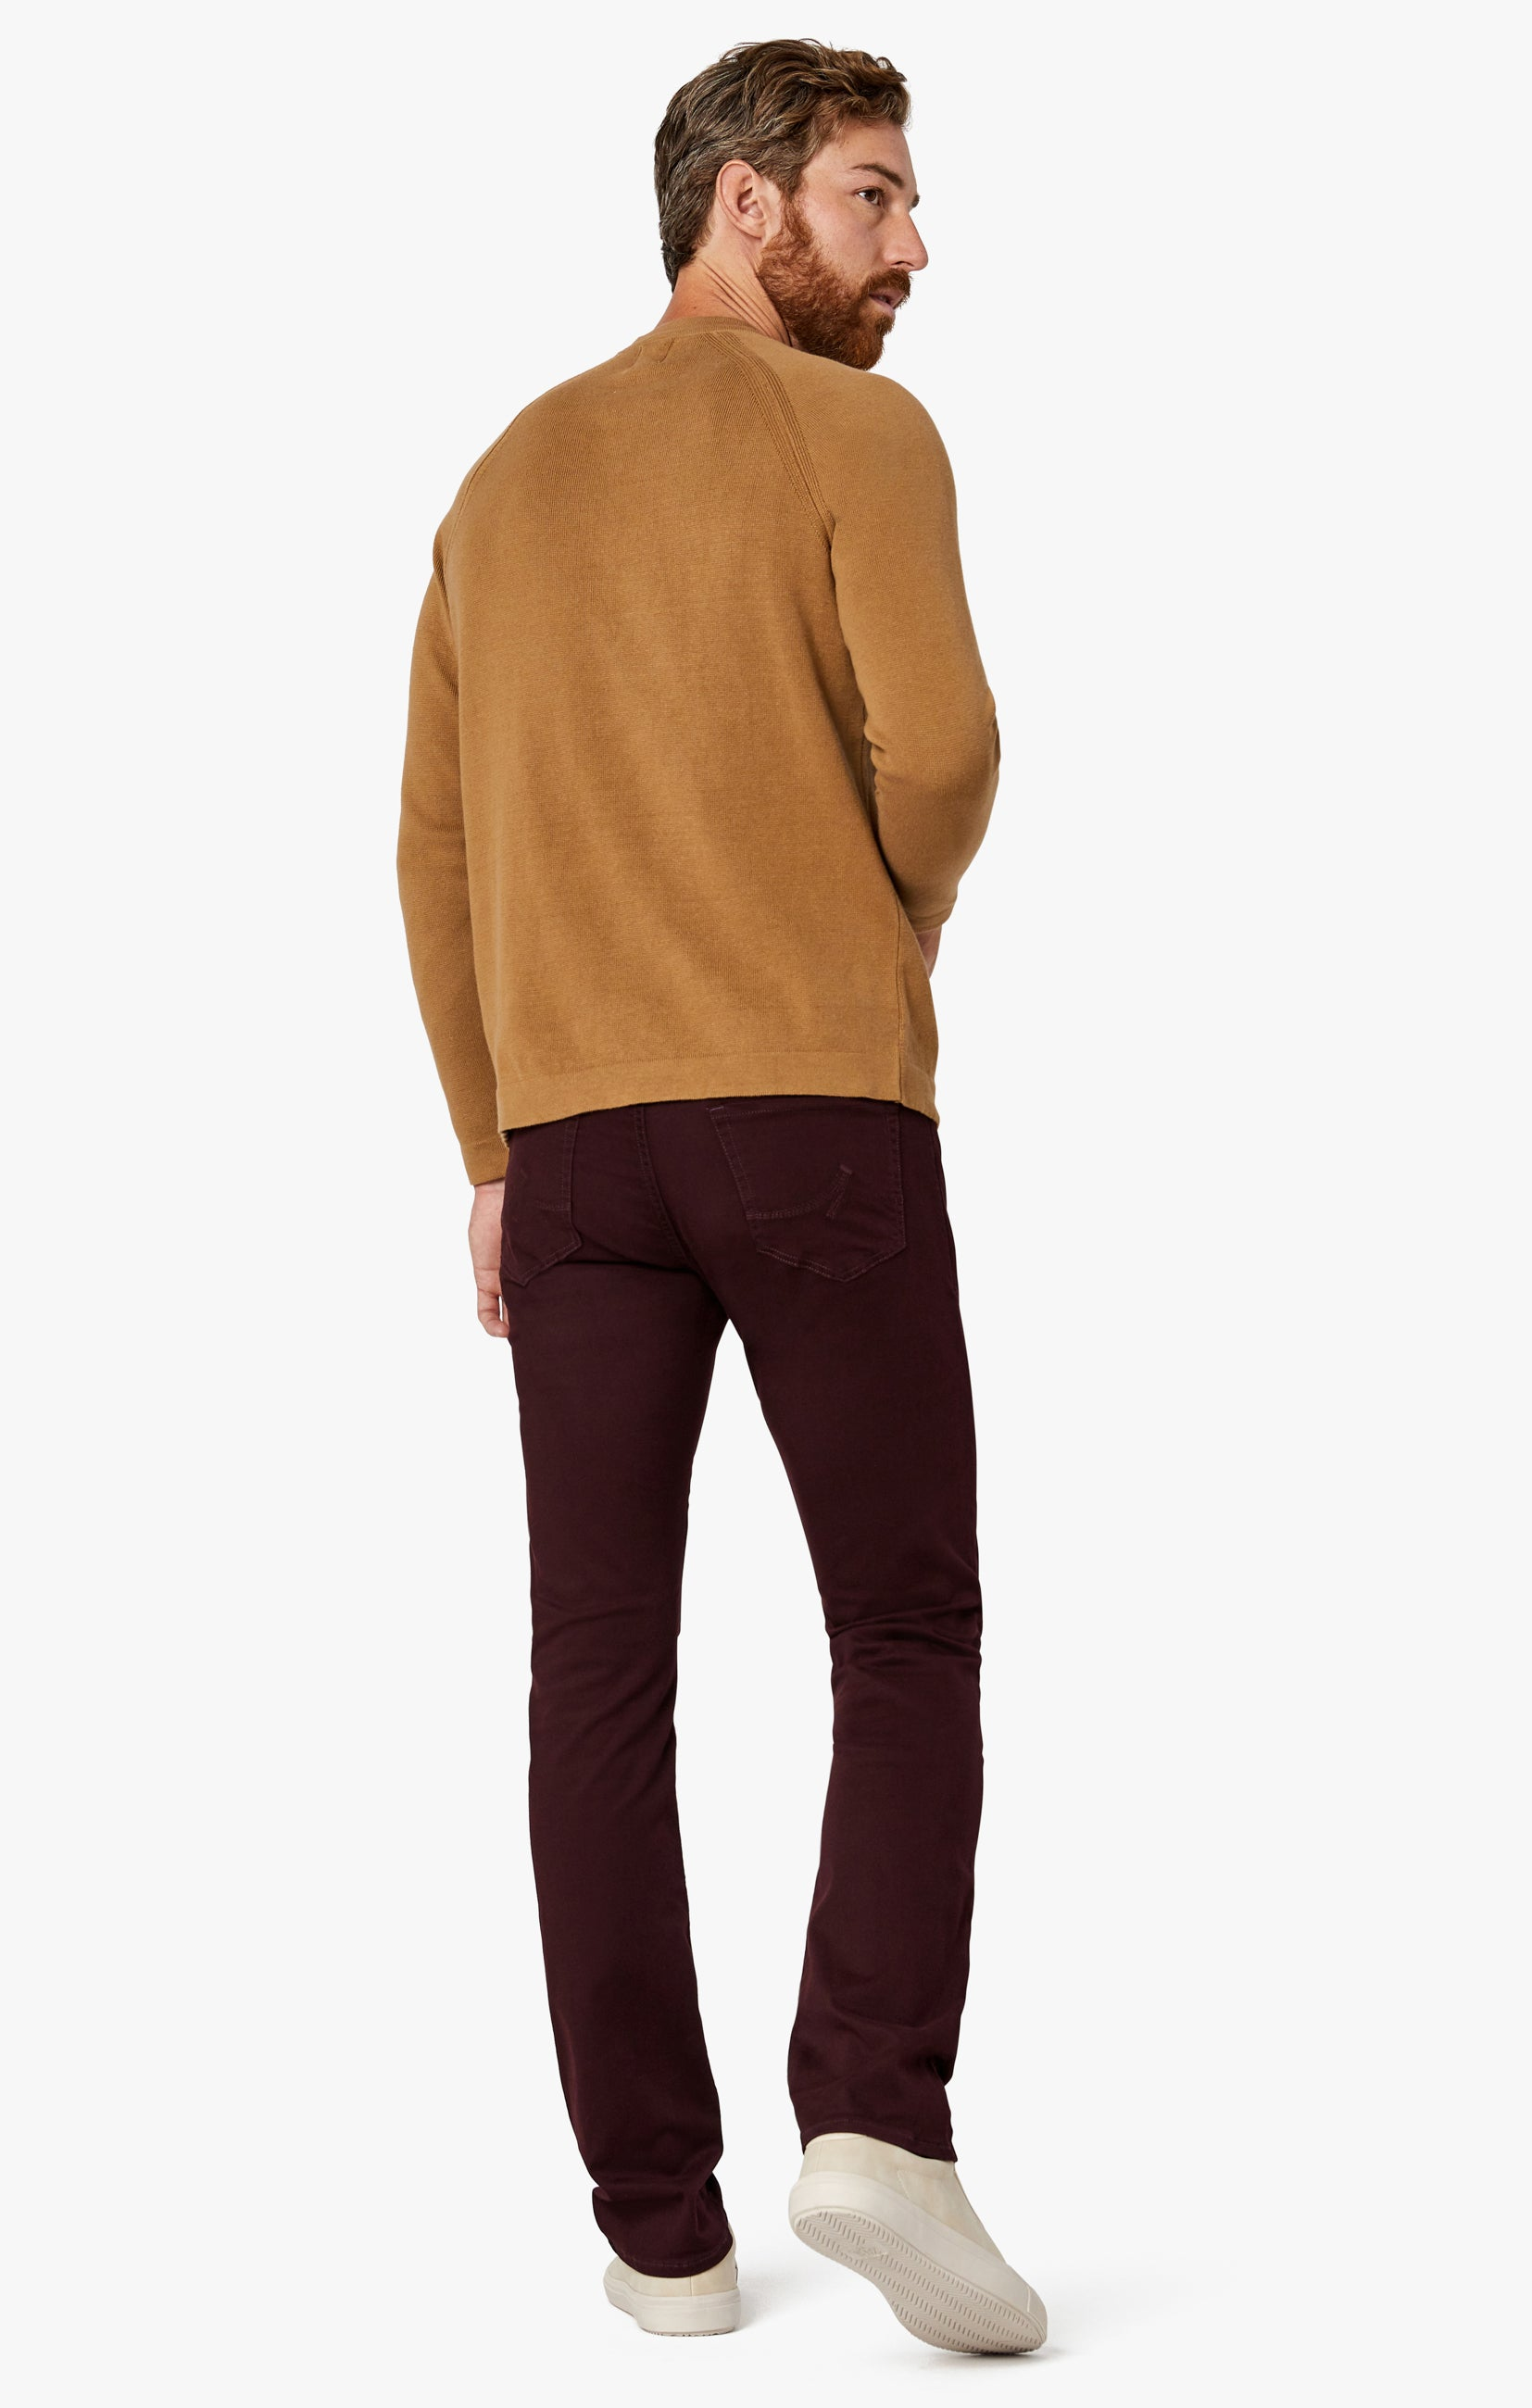 Charisma Relaxed Straight Pants in Wine Twill Image 8